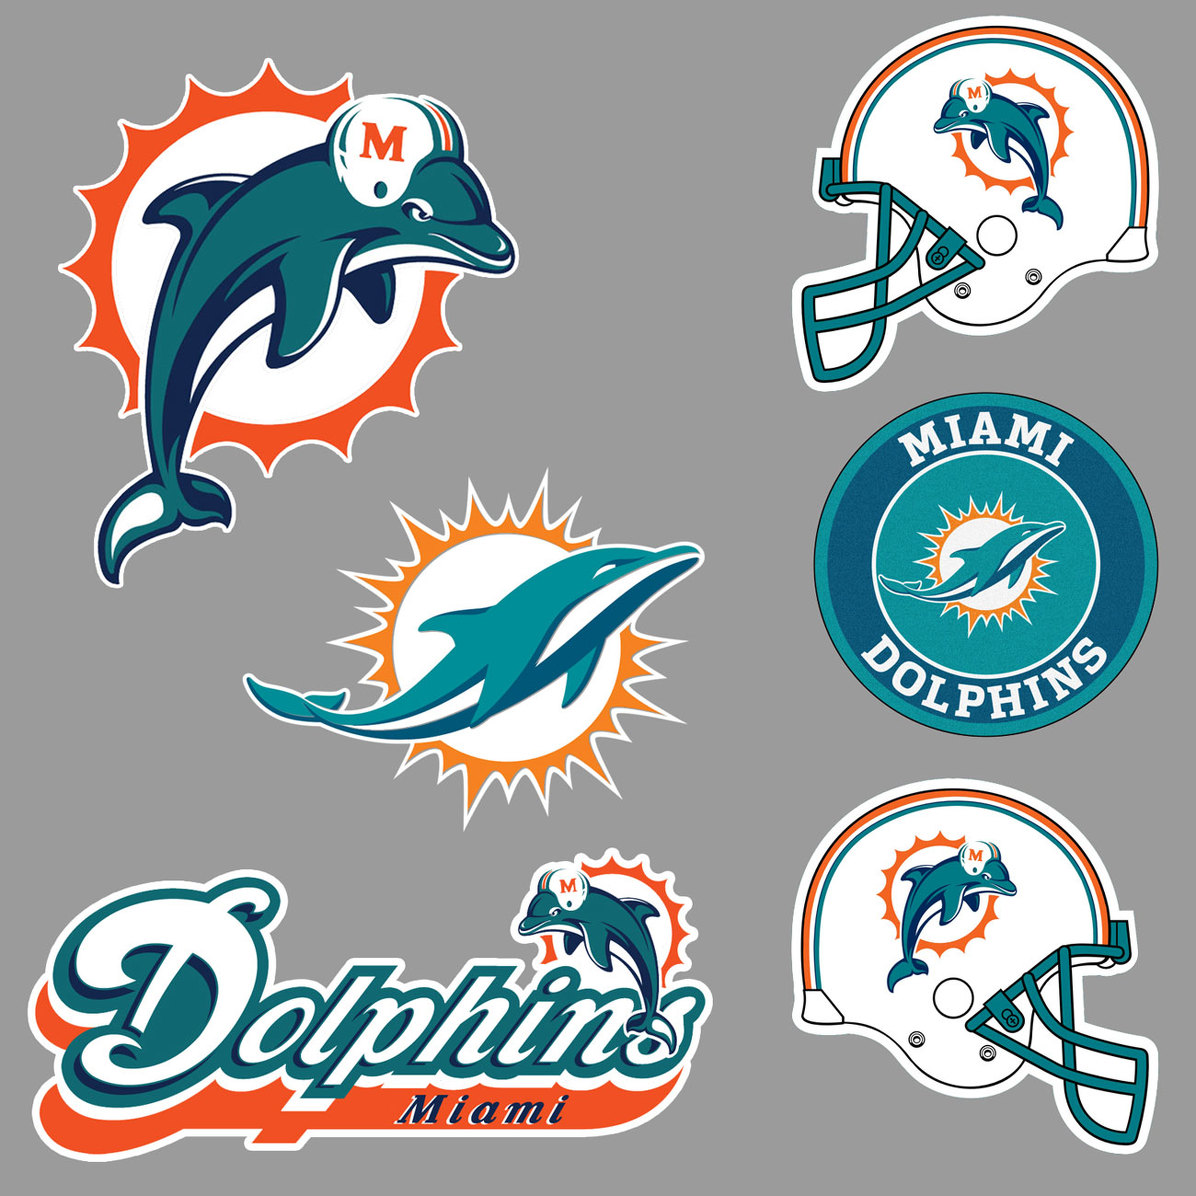 Miami dolphin wall stickers stickers design miami dolphins national football league nfl fan wall vehicle notebook etc decals stickers amipublicfo Image collections